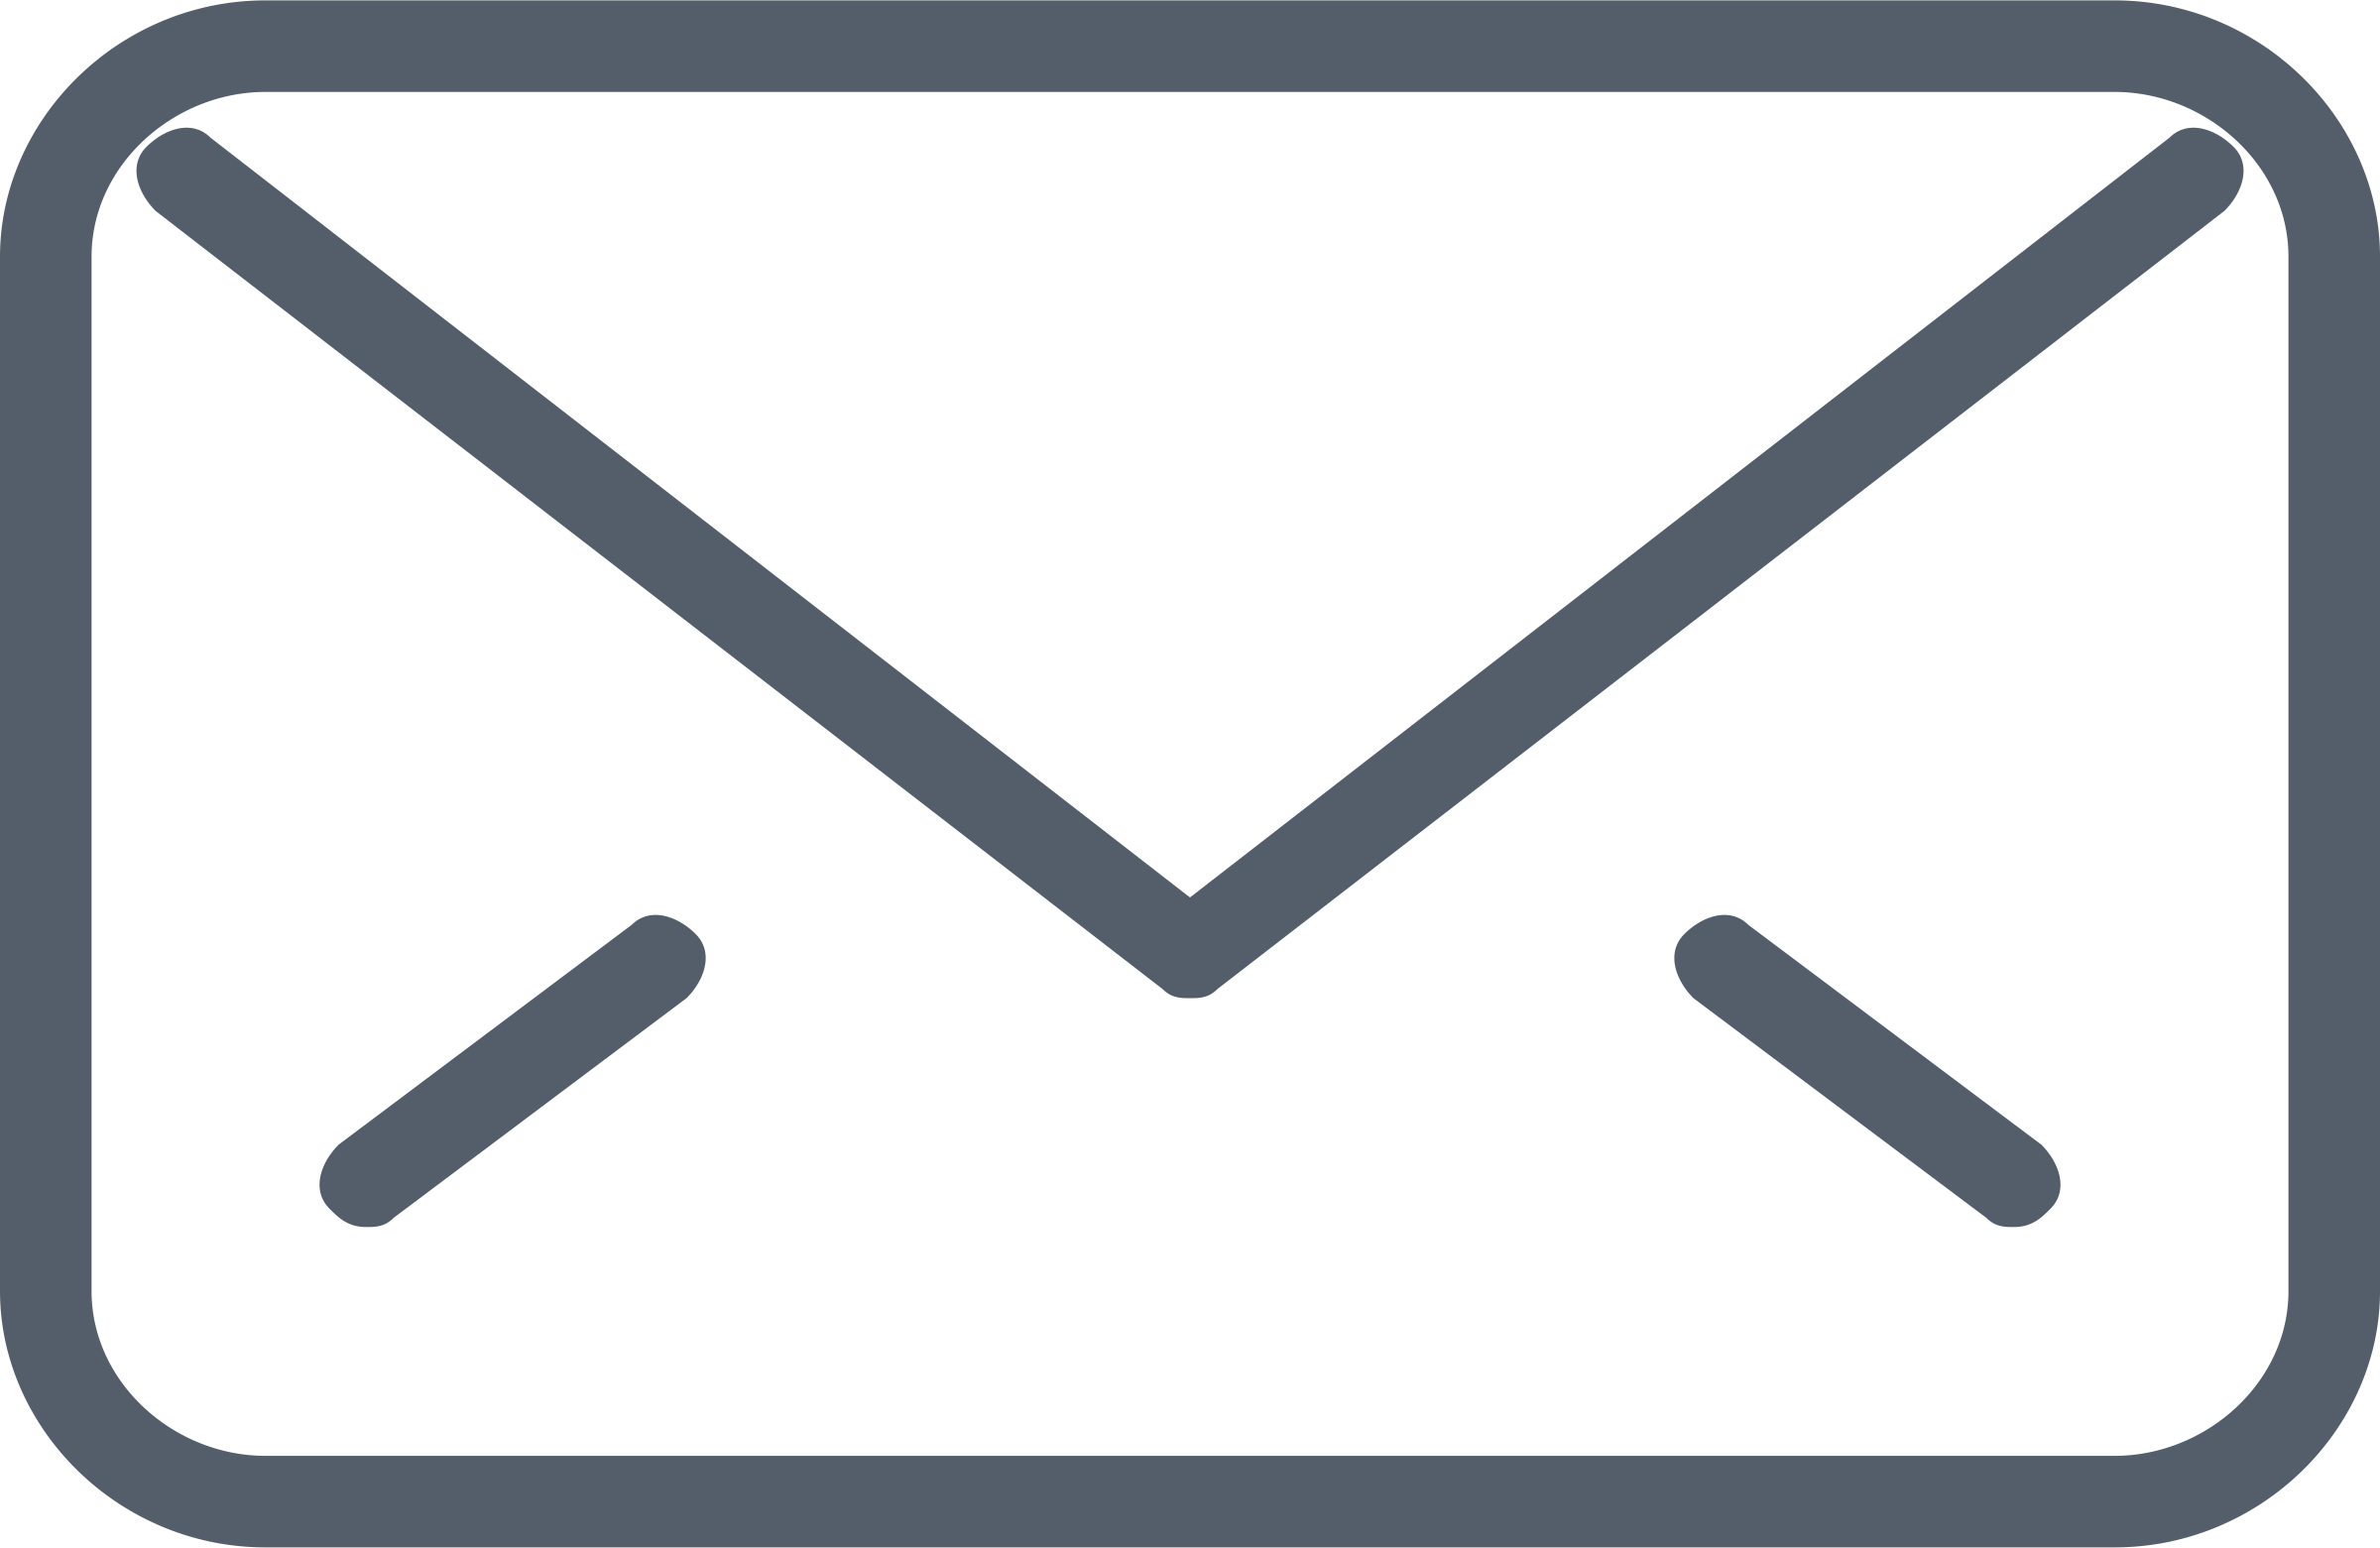 Email clipart png. Images free download